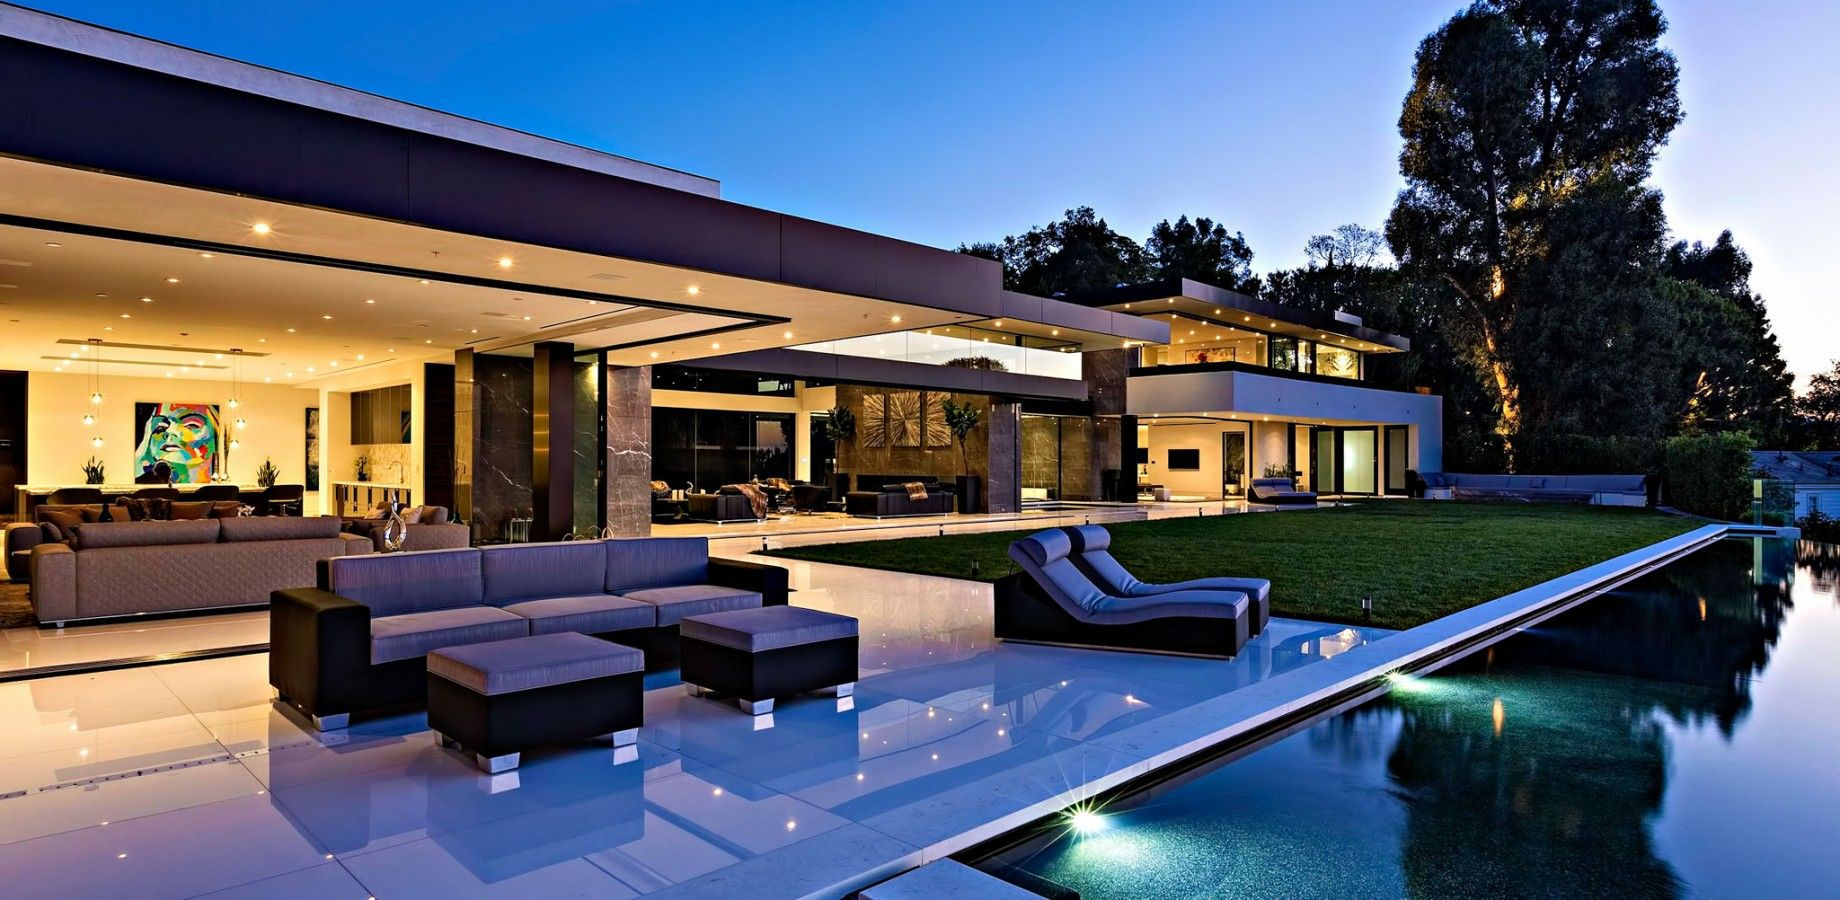 55 million bel air luxury residence 864 stradella road for Luxury home designs usa